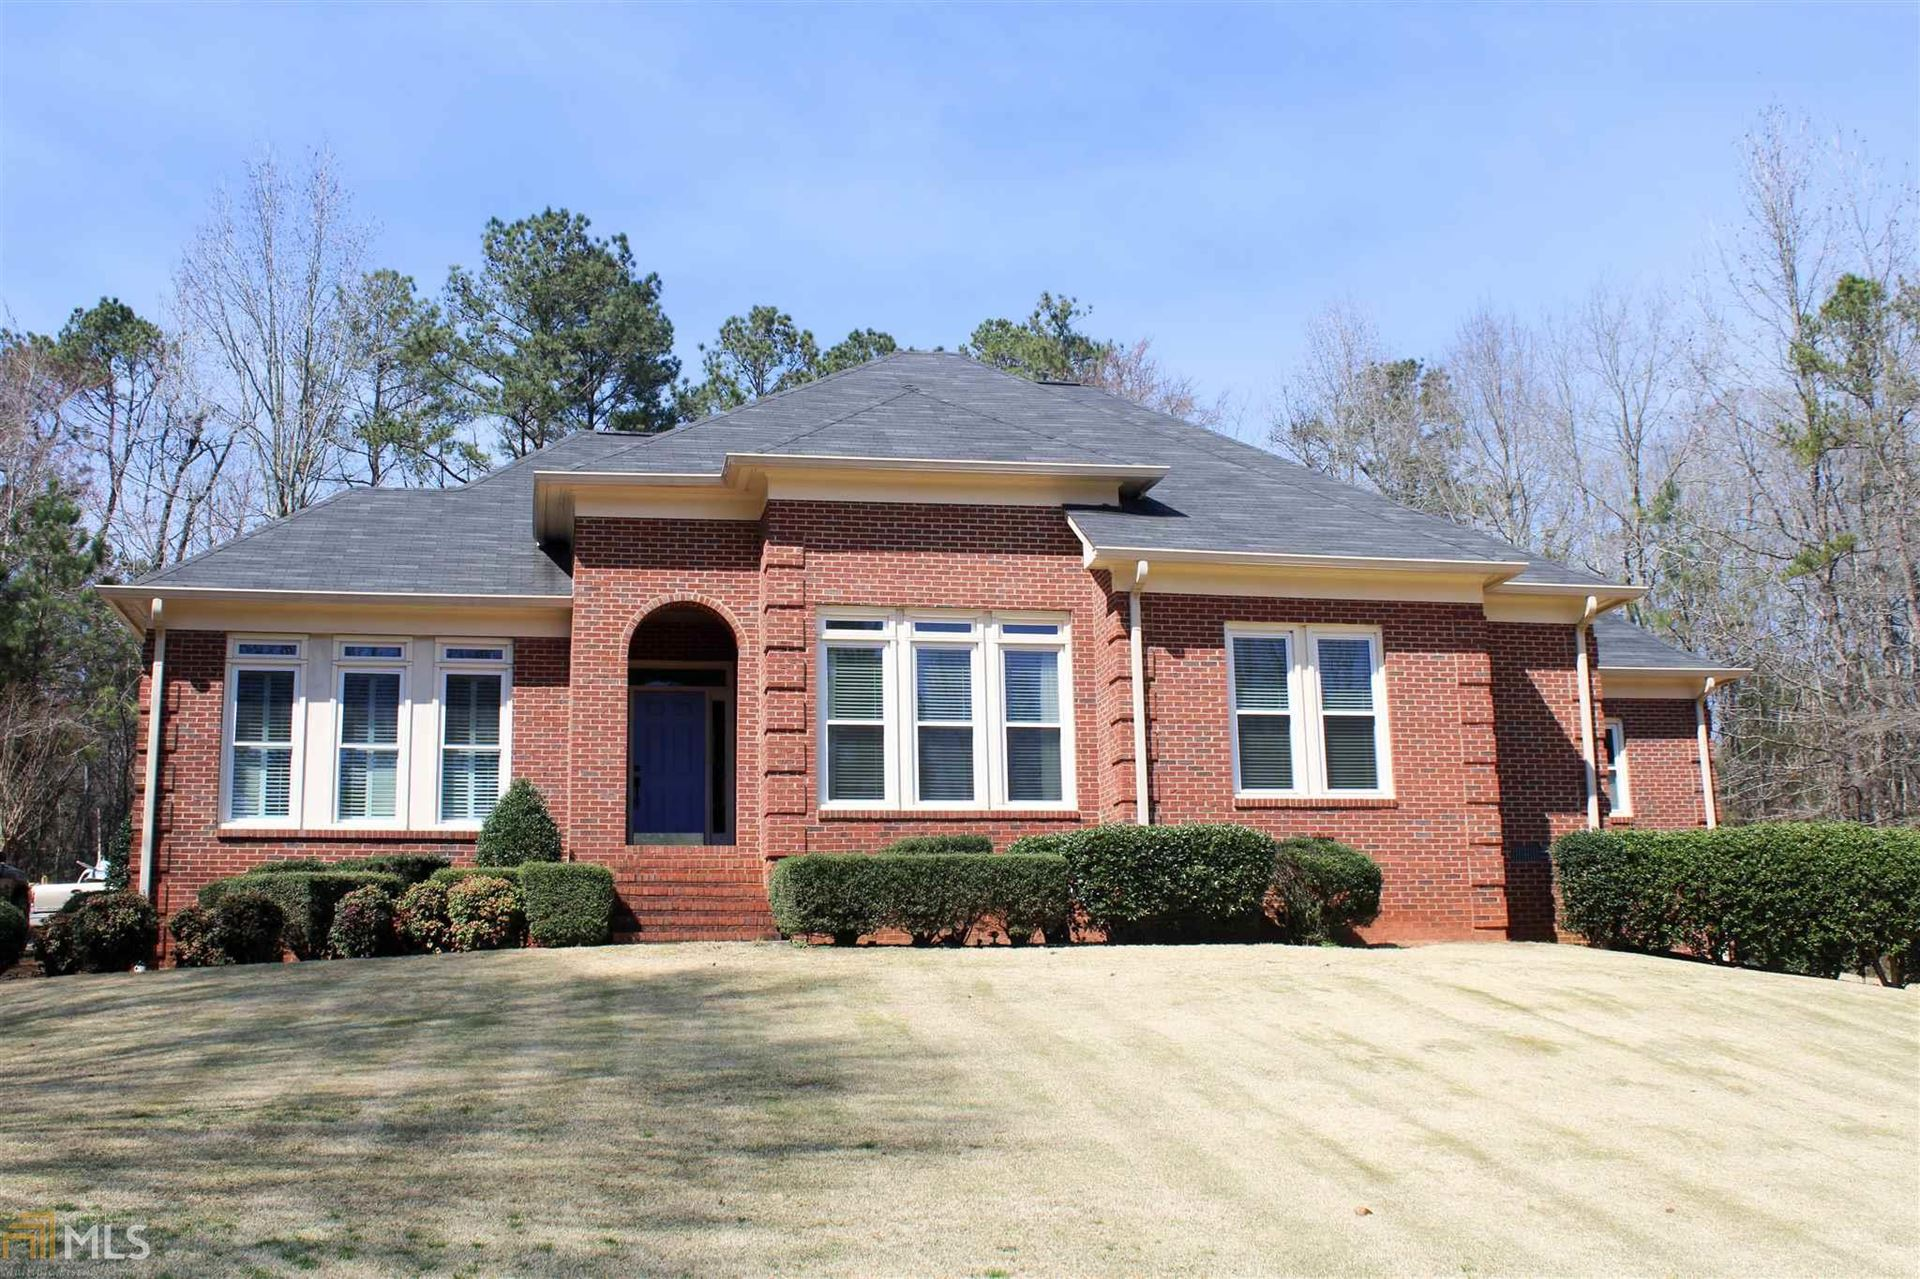 220 Village Dr, LaGrange, GA 30240 - #: 8889237